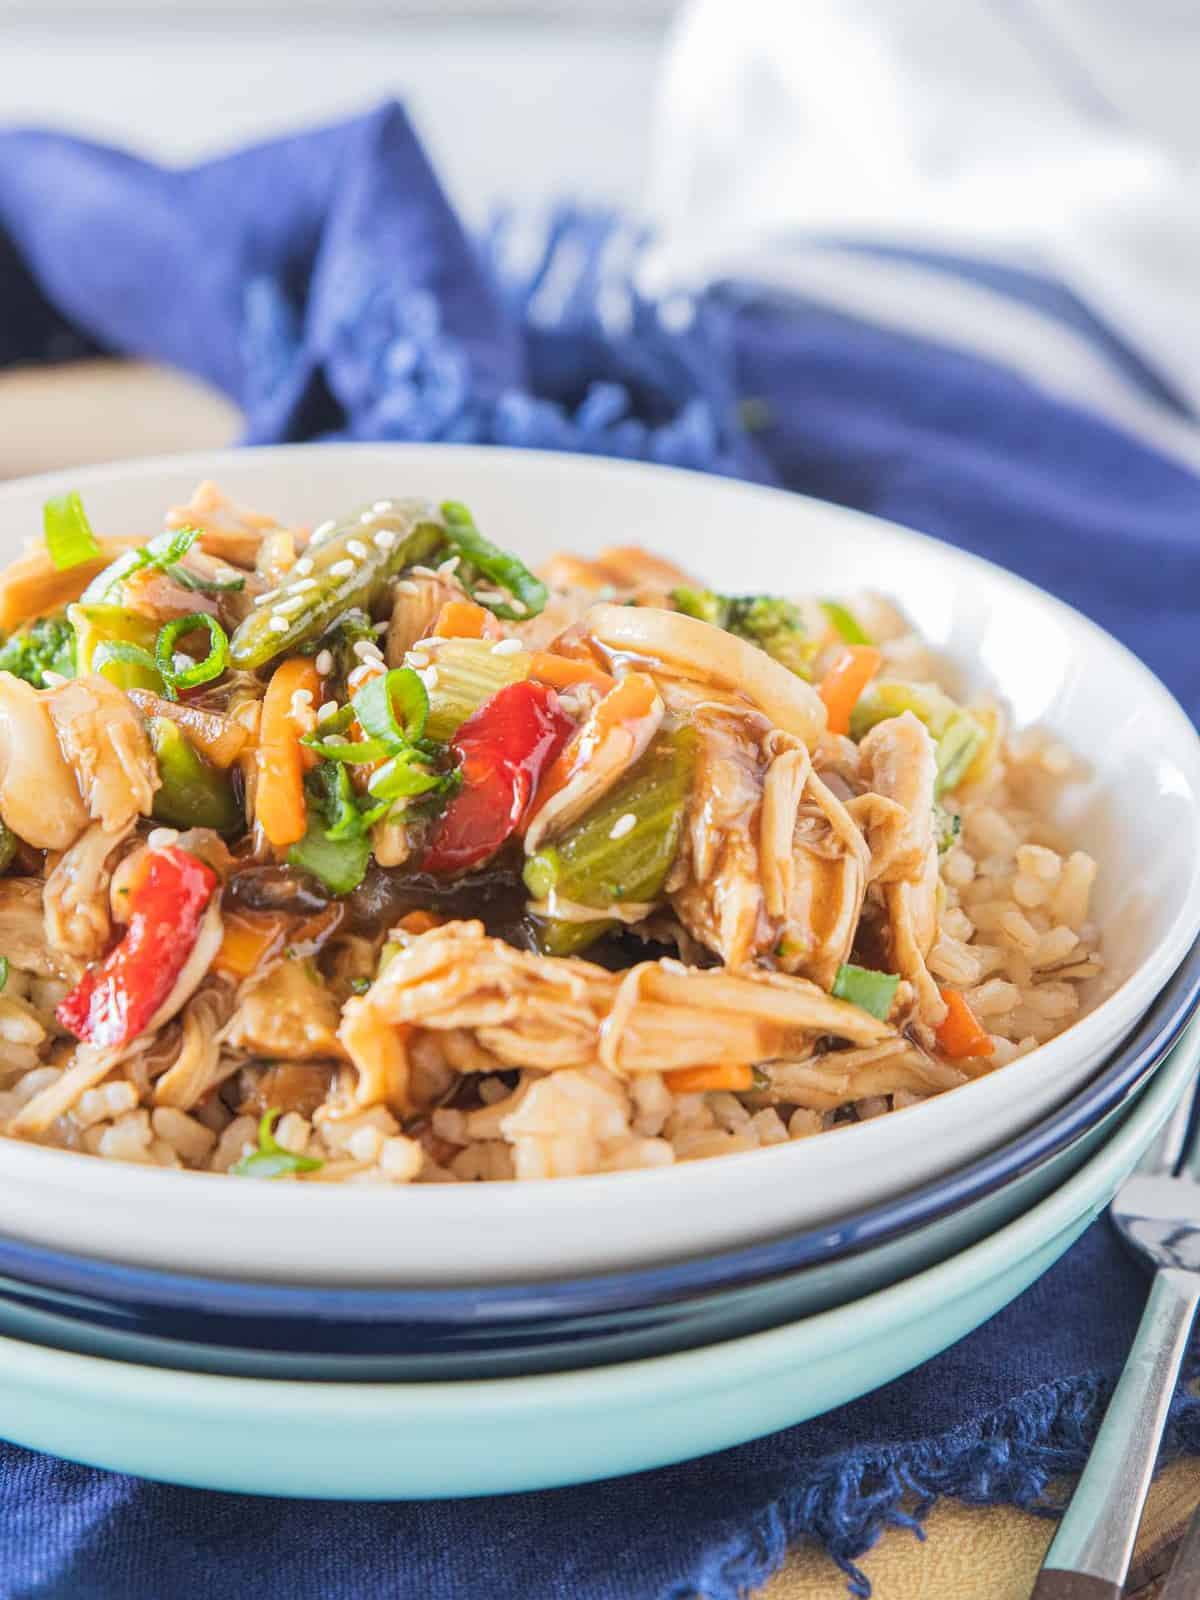 Instant pot chicken stir fry in a bowl.